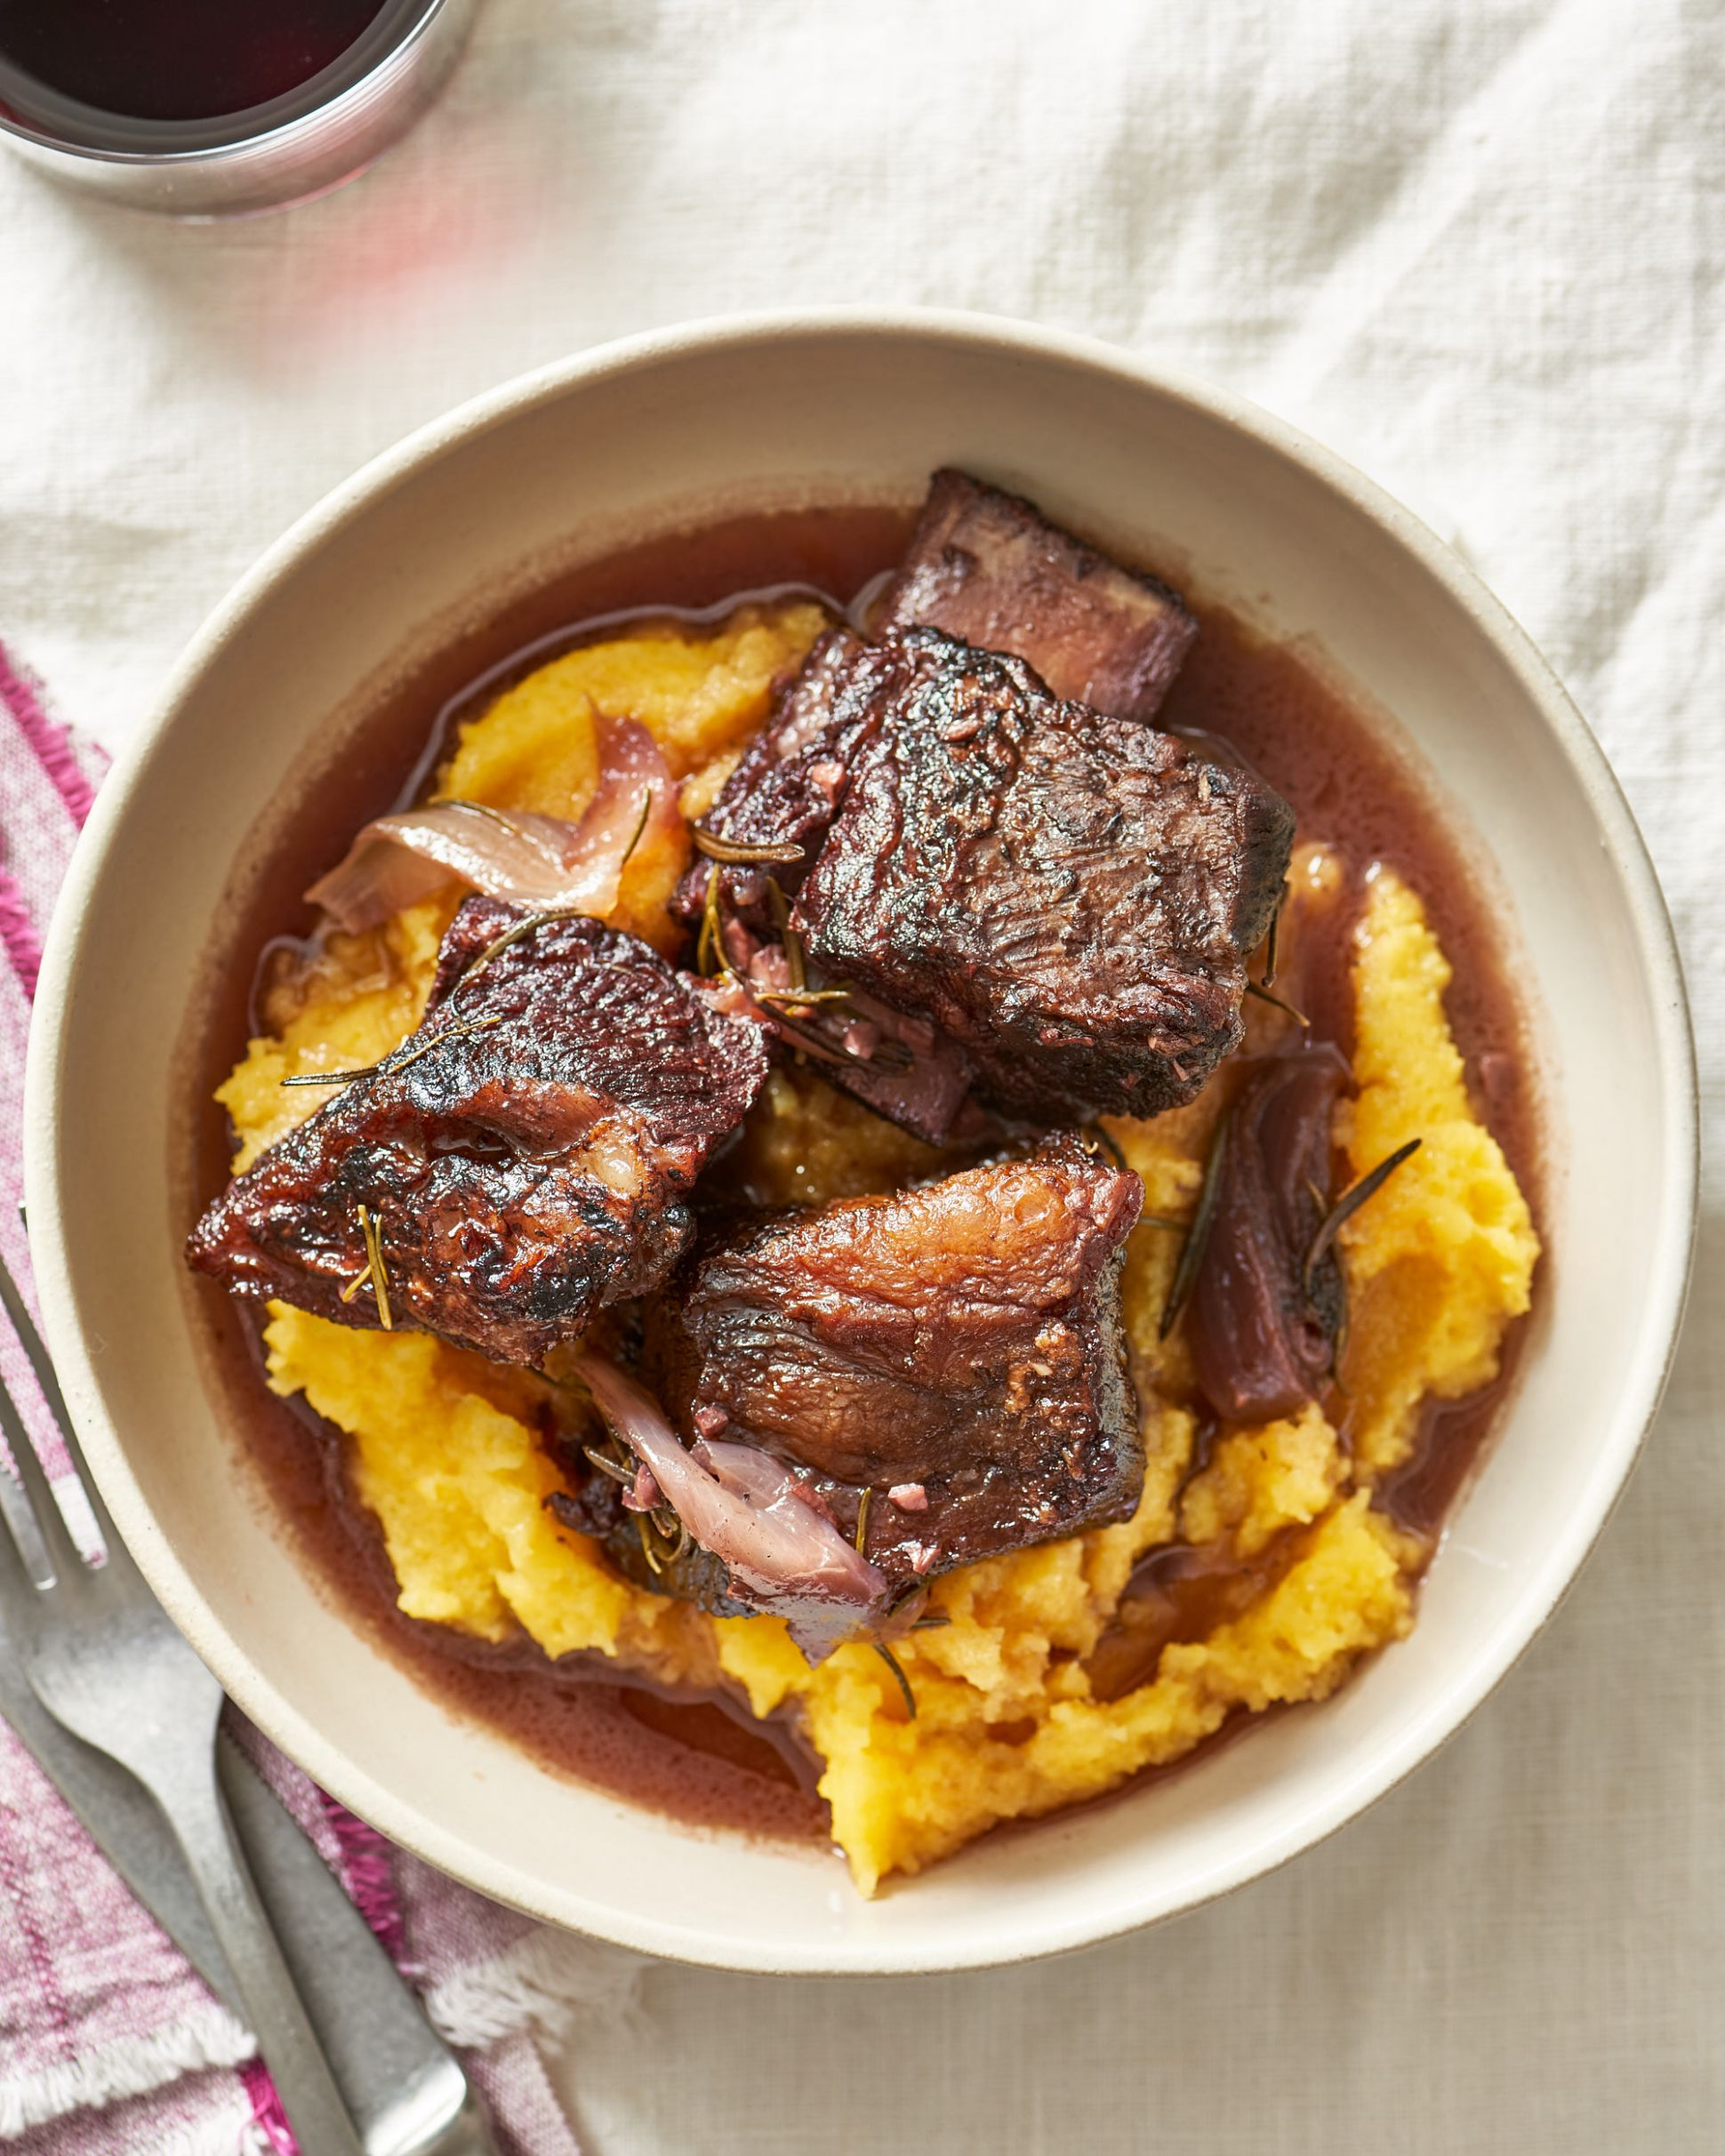 How To Make Braised Short Ribs in the Oven - Recipes For Beef Short Ribs